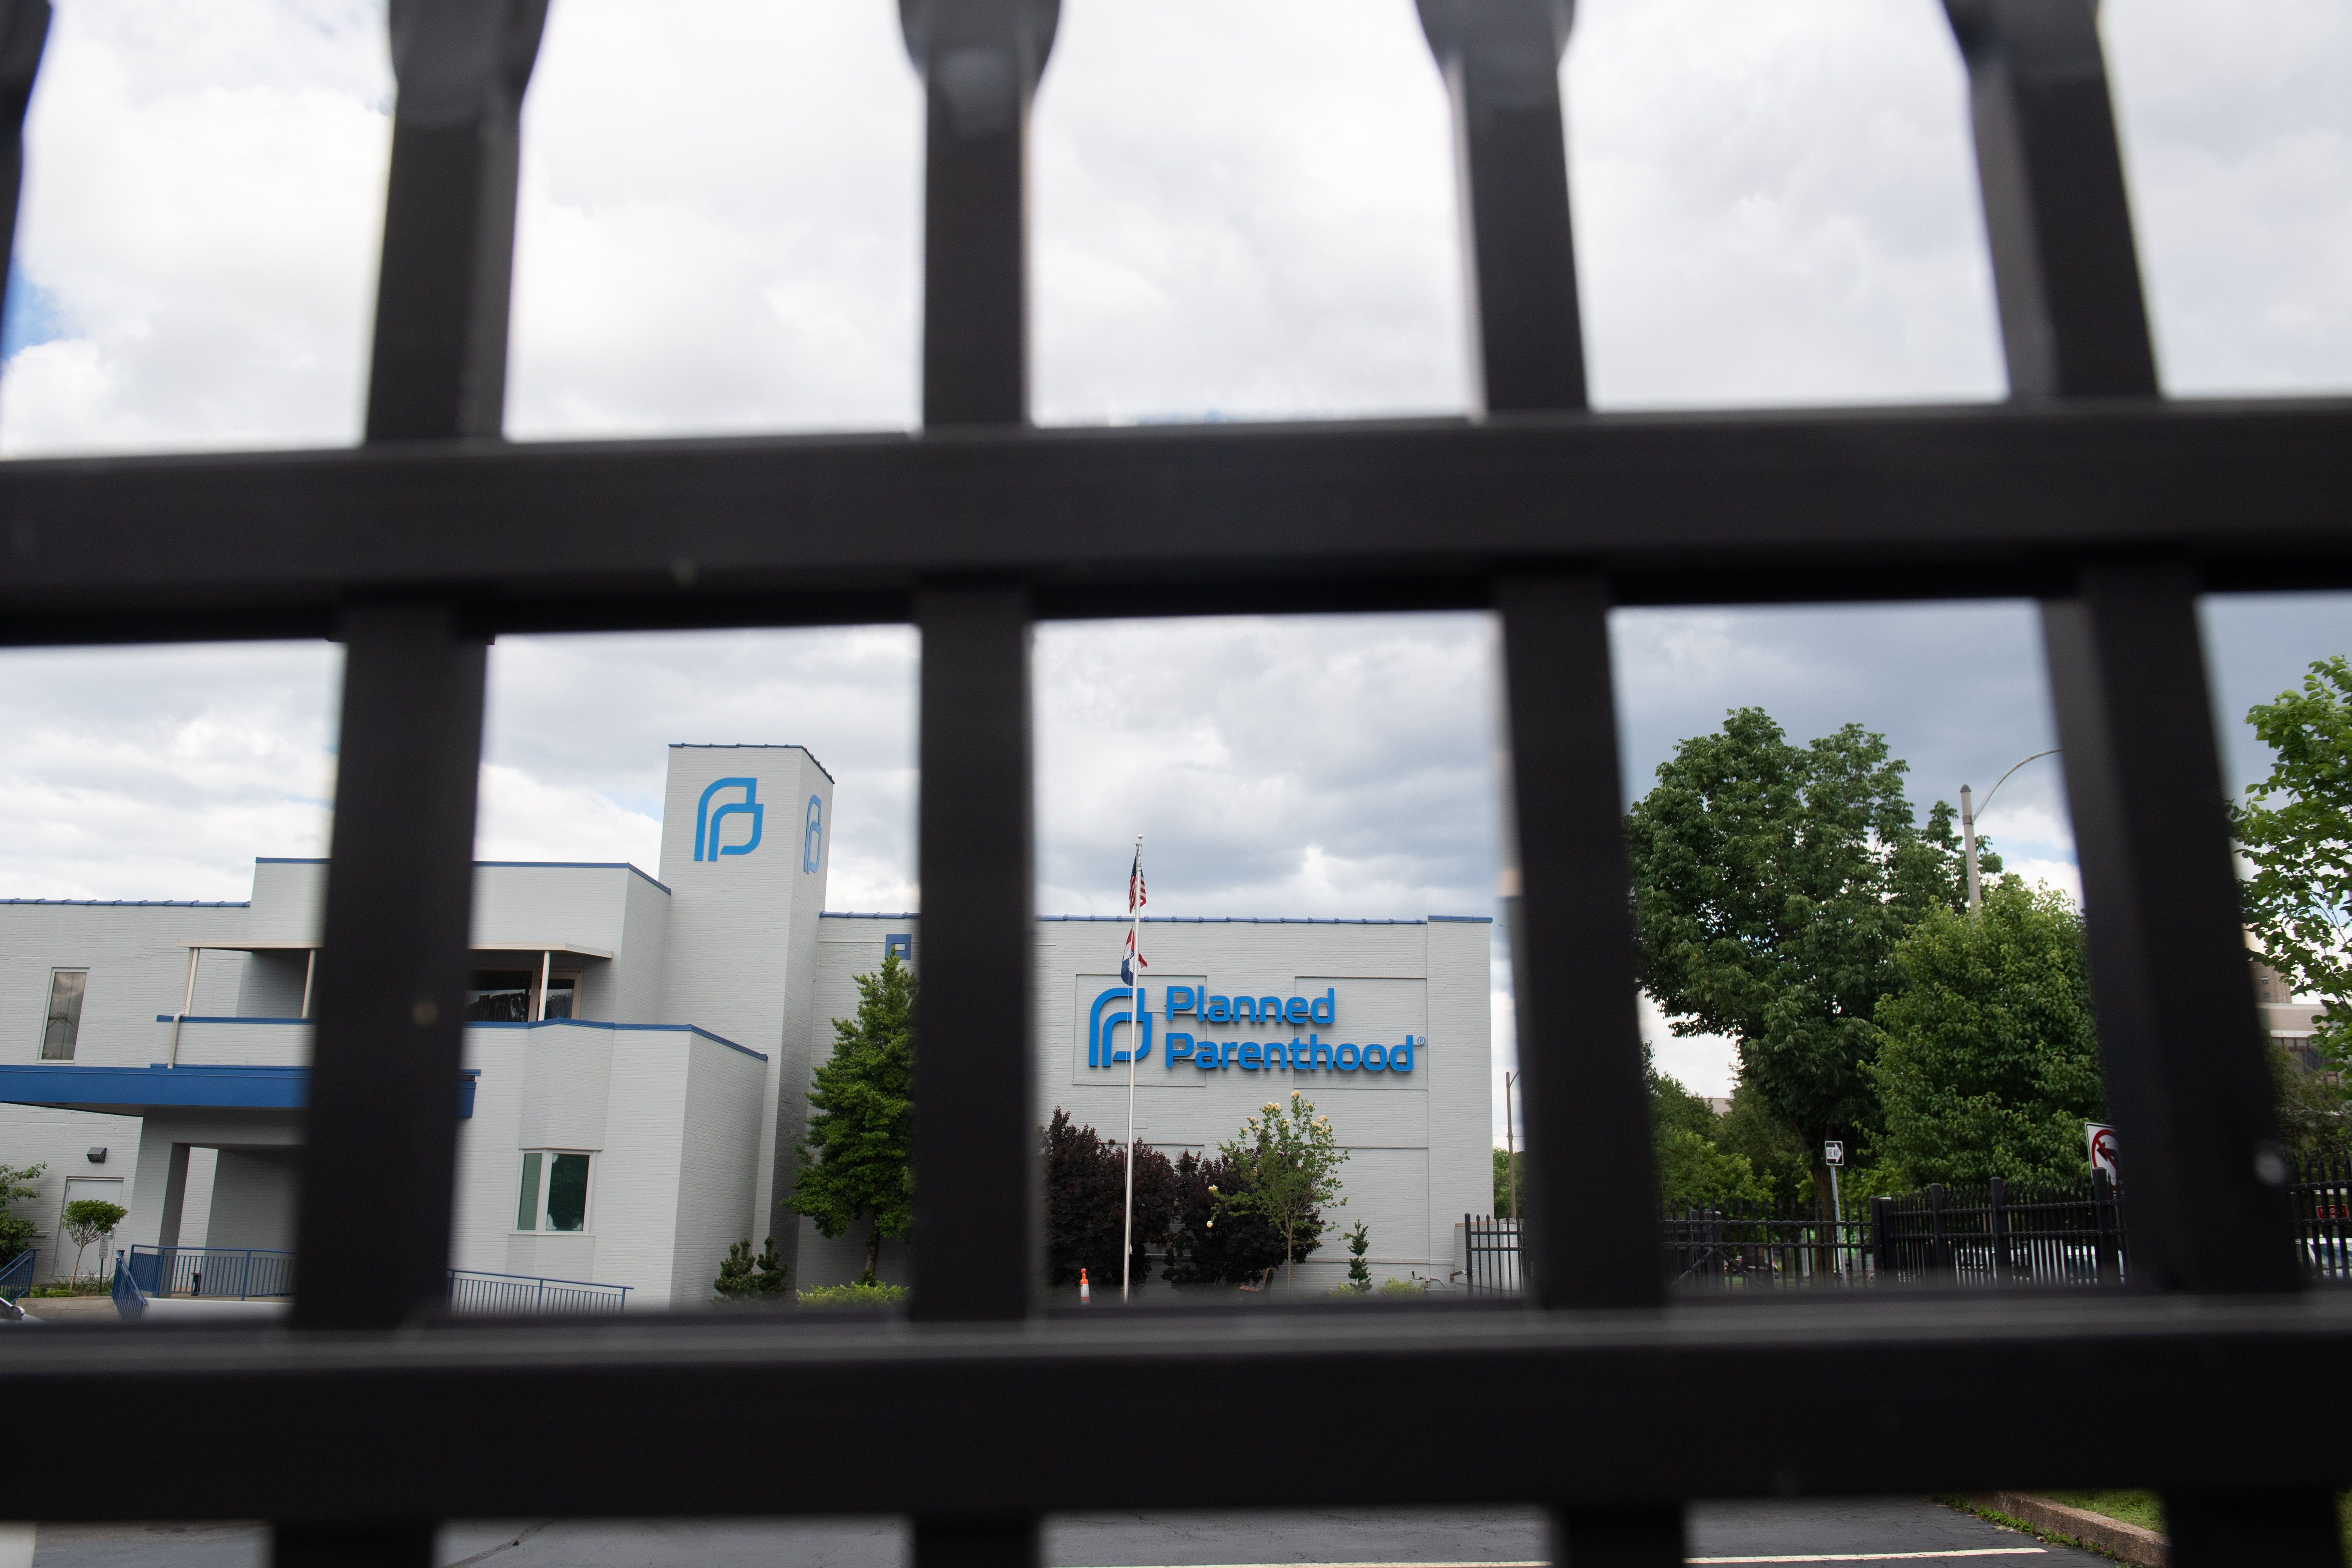 The outside of the Planned Parenthood Reproductive Health Services Center is seen through a gate in St. Louis, Missouri, May 30, 2019, the last location in the state performing abortions. - A US court weighed the fate of the last abortion clinic in Missouri on May 30, with the state hours away from becoming the first in 45 years to no longer offer the procedure amid a nationwide push to curtail access to abortion. (Photo by SAUL LOEB / AFP) (Photo credit should read SAUL LOEB/AFP via Getty Images)